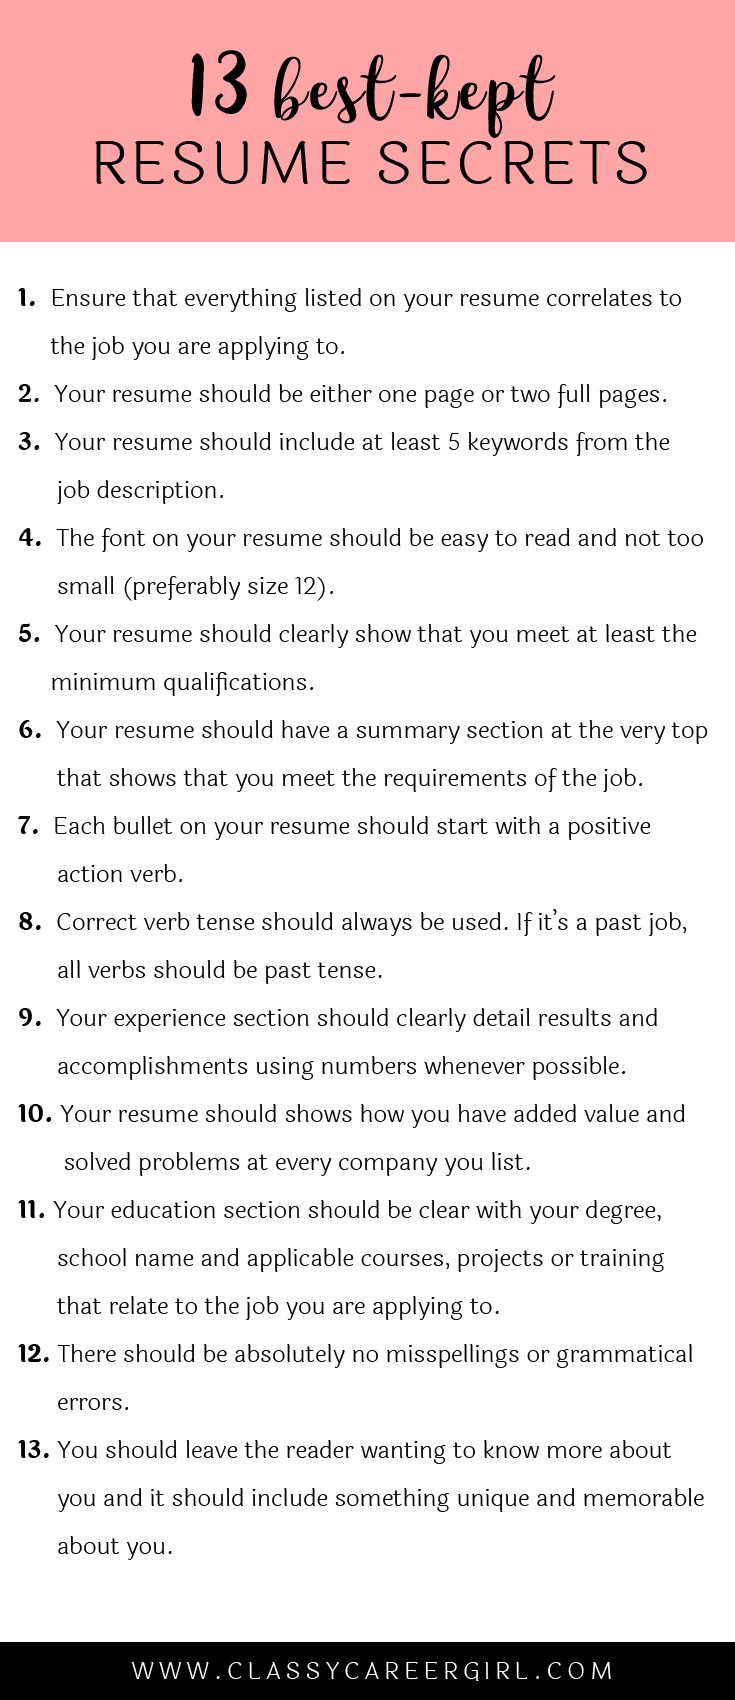 Opposenewapstandardsus  Splendid  Ideas About Resume On Pinterest  Cv Format Resume  With Foxy Some Hiring Managers Will Toss Your Resume Out If You Dont Know These  With Enchanting Cover Letter For Resumes Also Slp Resume In Addition Plumber Resume And Is My Perfect Resume Free As Well As Impressive Resume Additionally Outline Of A Resume From Pinterestcom With Opposenewapstandardsus  Foxy  Ideas About Resume On Pinterest  Cv Format Resume  With Enchanting Some Hiring Managers Will Toss Your Resume Out If You Dont Know These  And Splendid Cover Letter For Resumes Also Slp Resume In Addition Plumber Resume From Pinterestcom